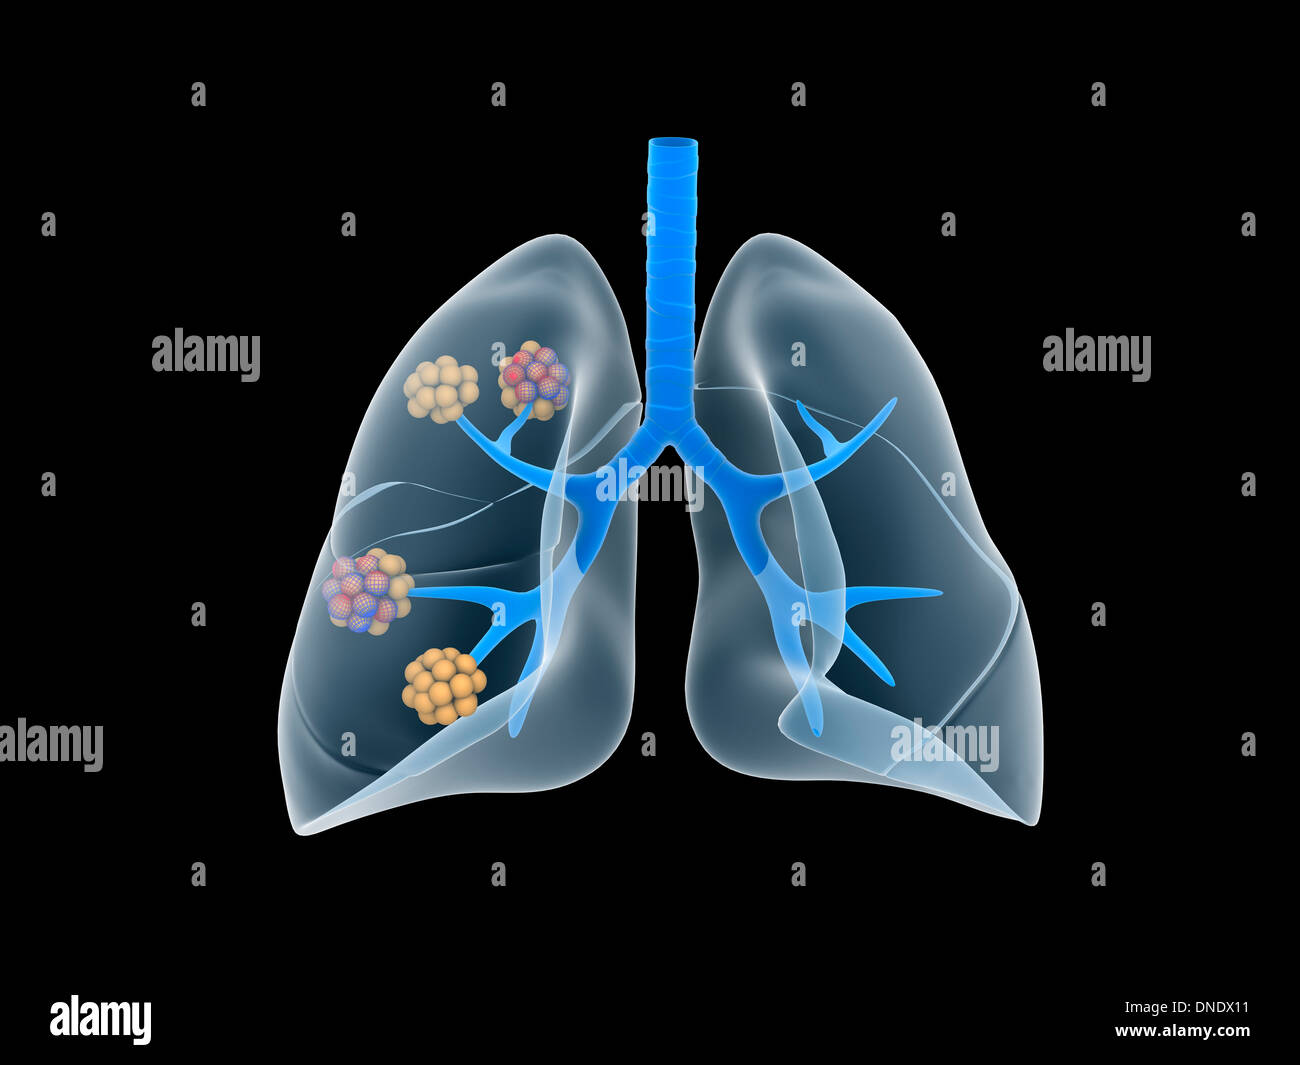 Conceptual image of human lungs. - Stock Image